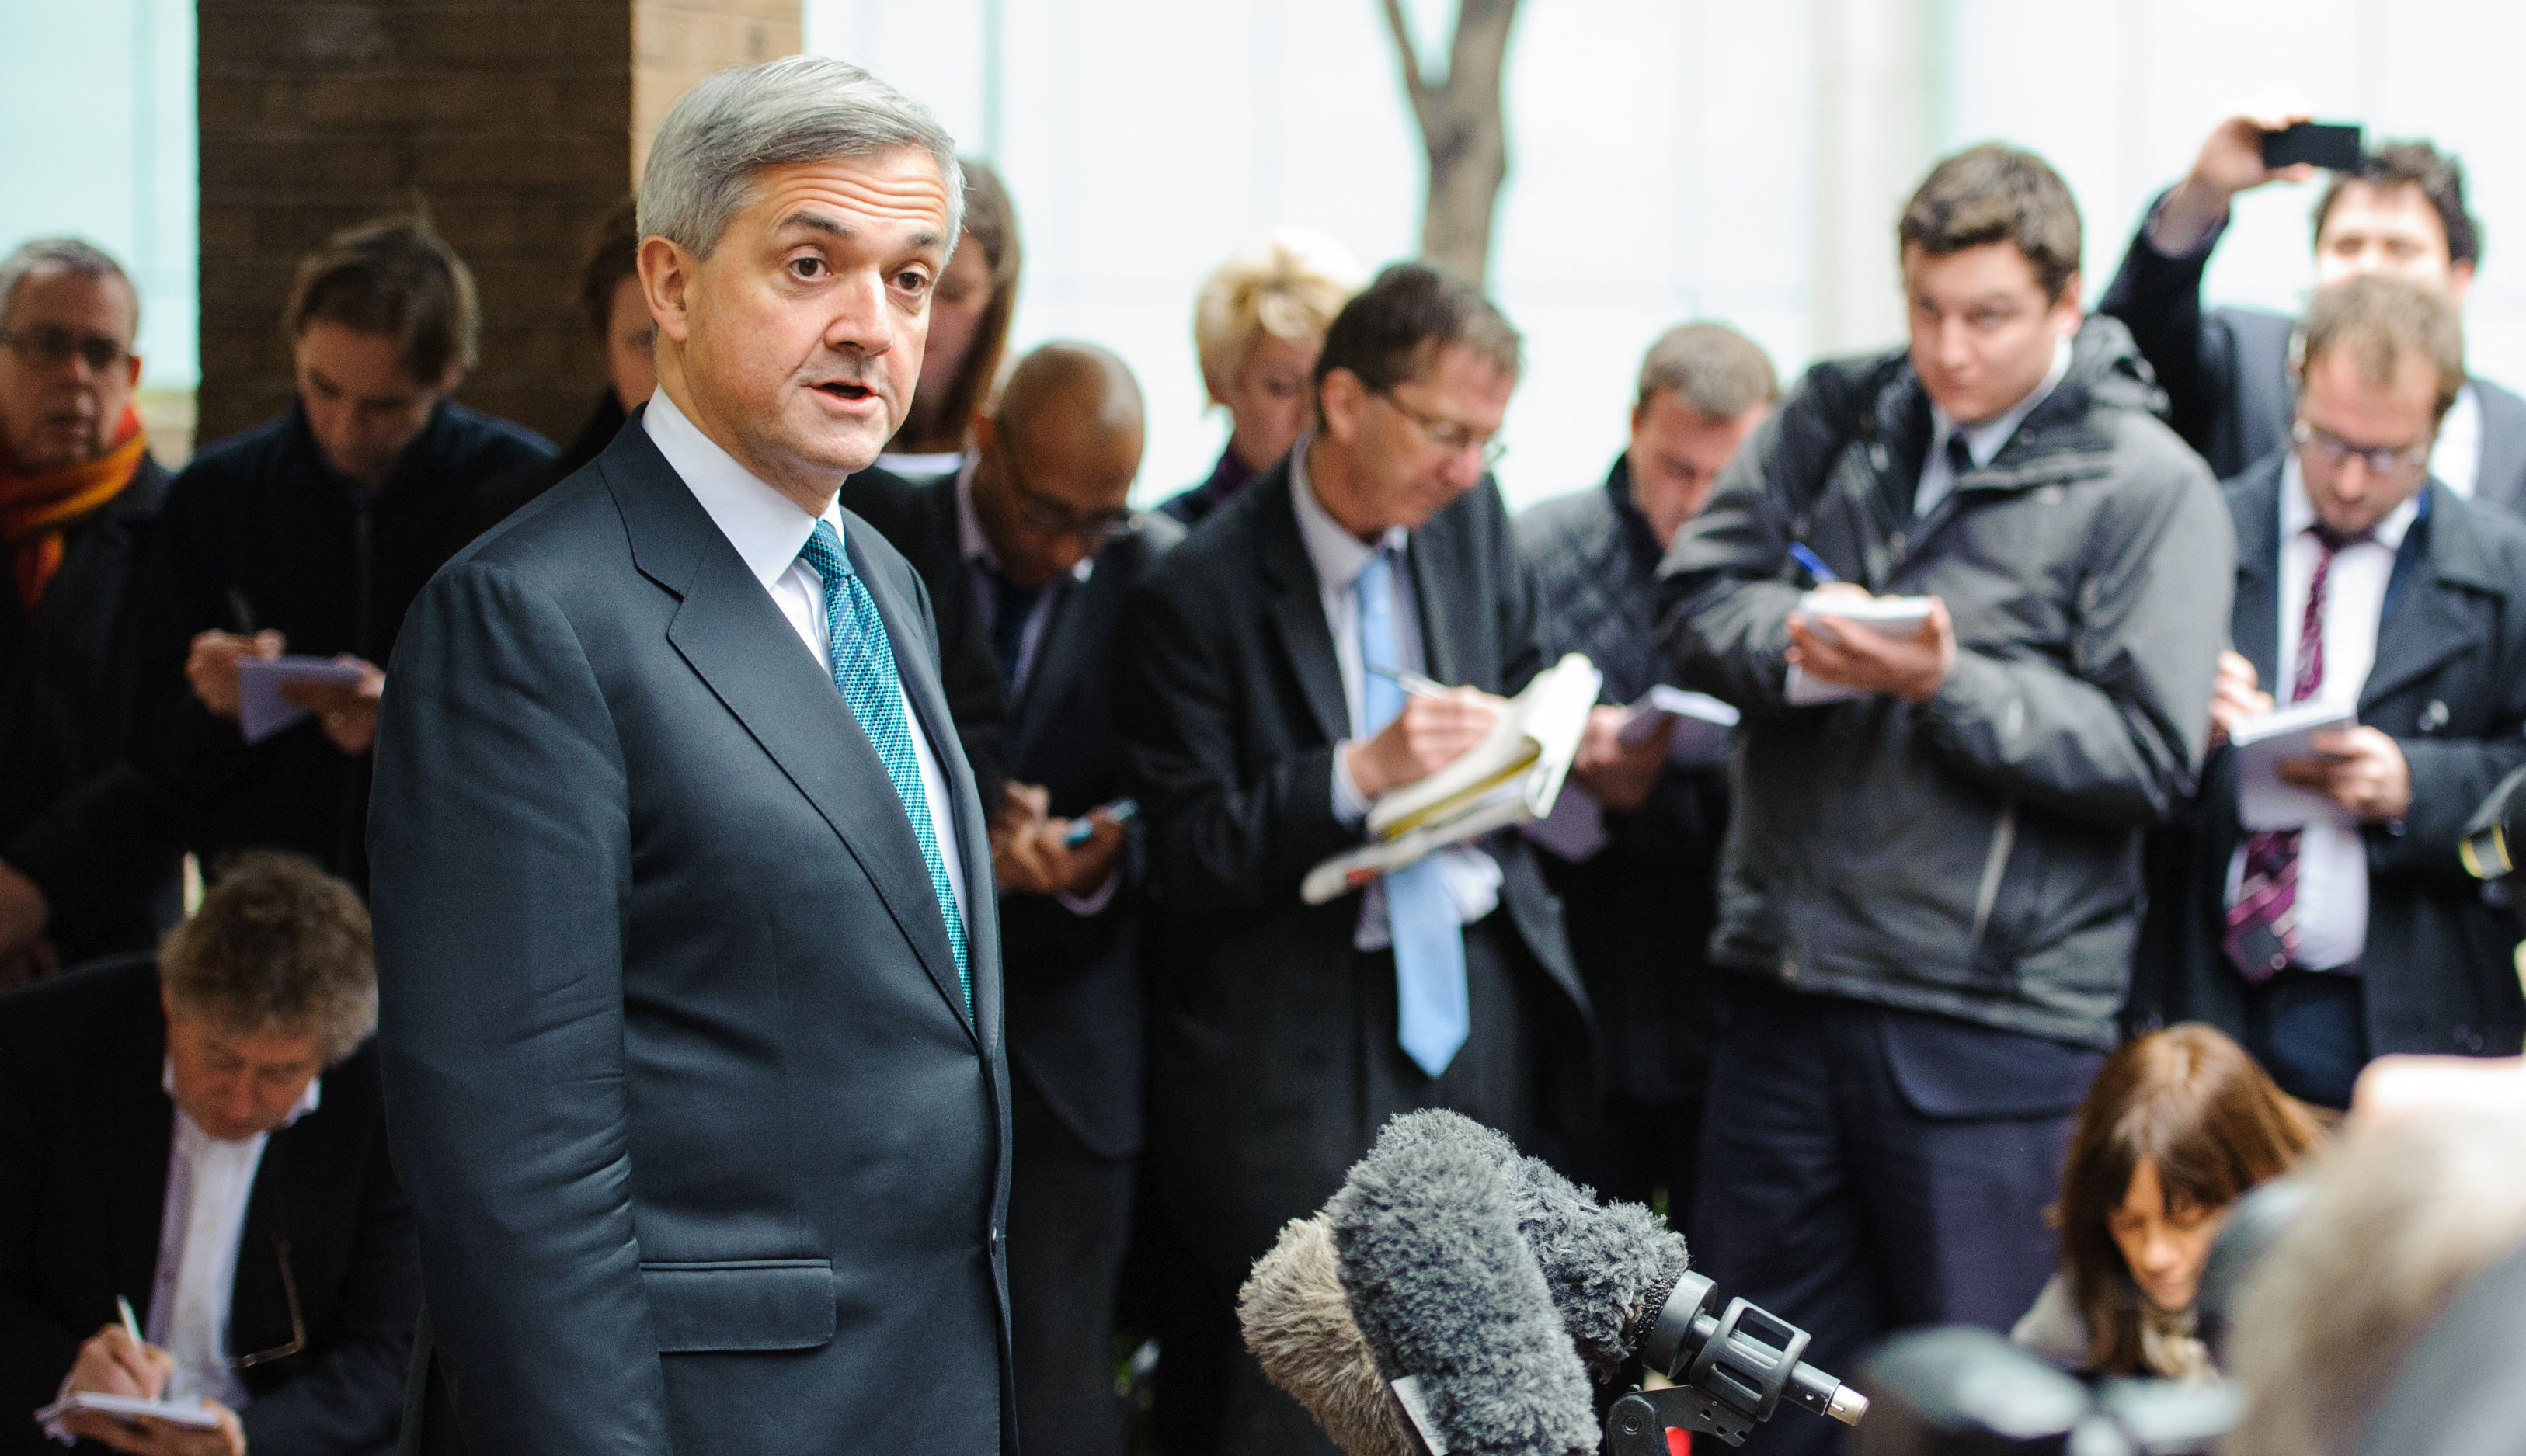 Chris Huhne's son texted father urging him to 'accept responsibility'